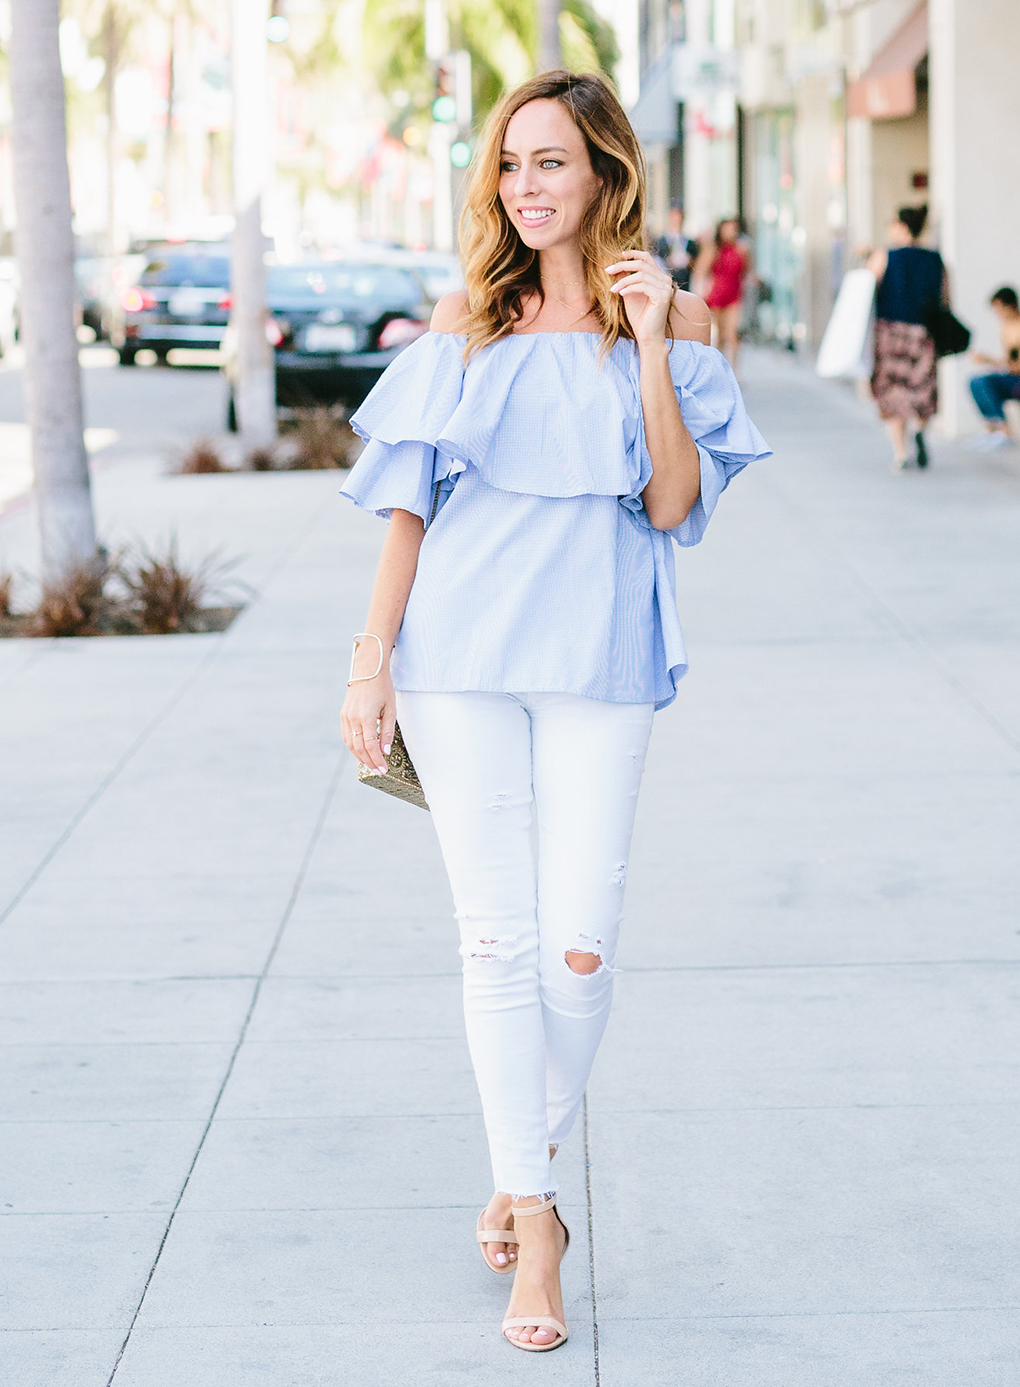 Sydne-Style-wears-ruffled-off-the-shoulder-top-for-summer-fashion-trends-street-style